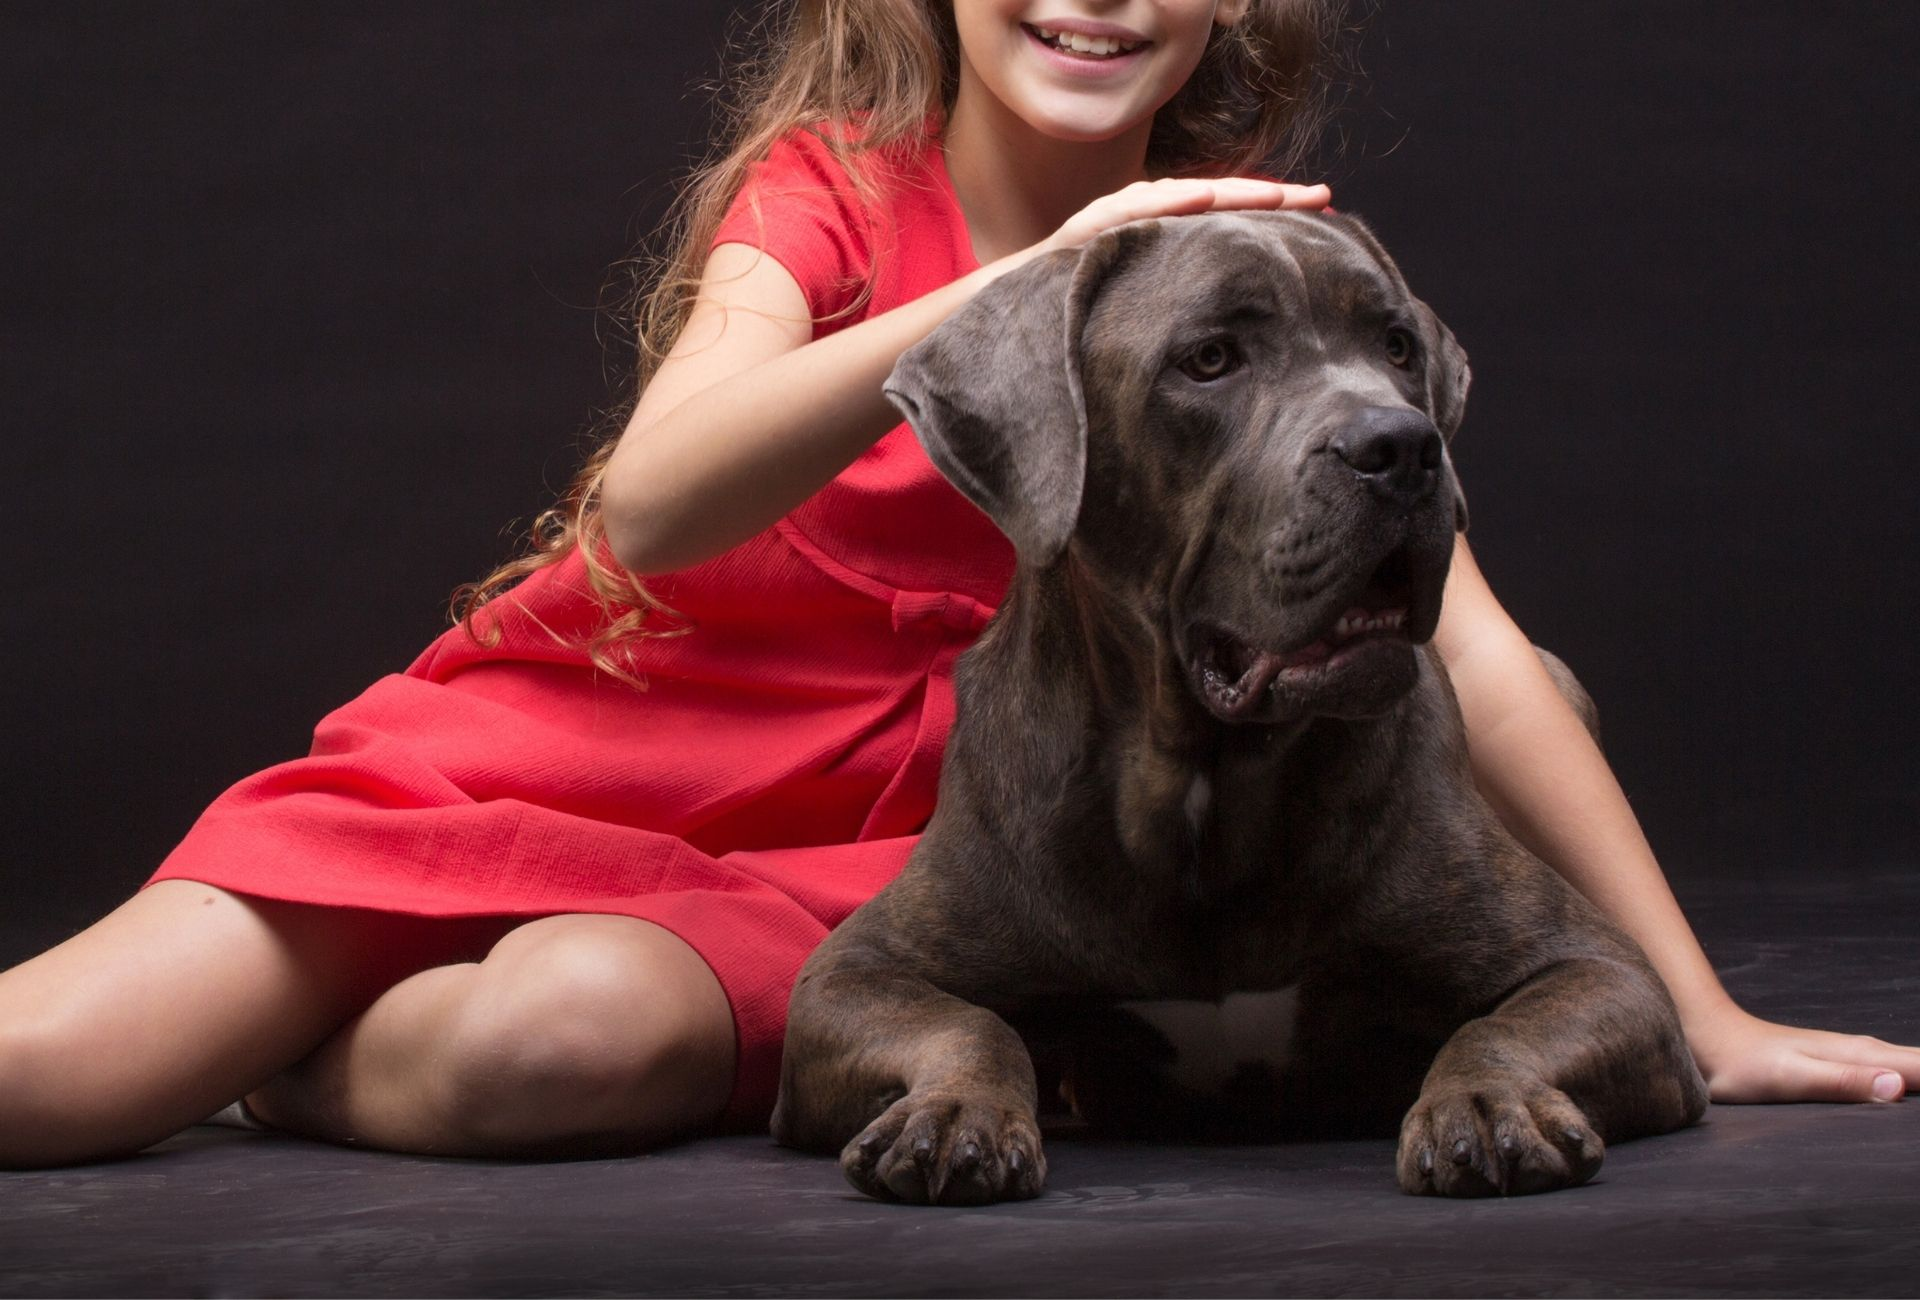 Large gray Cane Corso is petted by a little girl in a red dress.